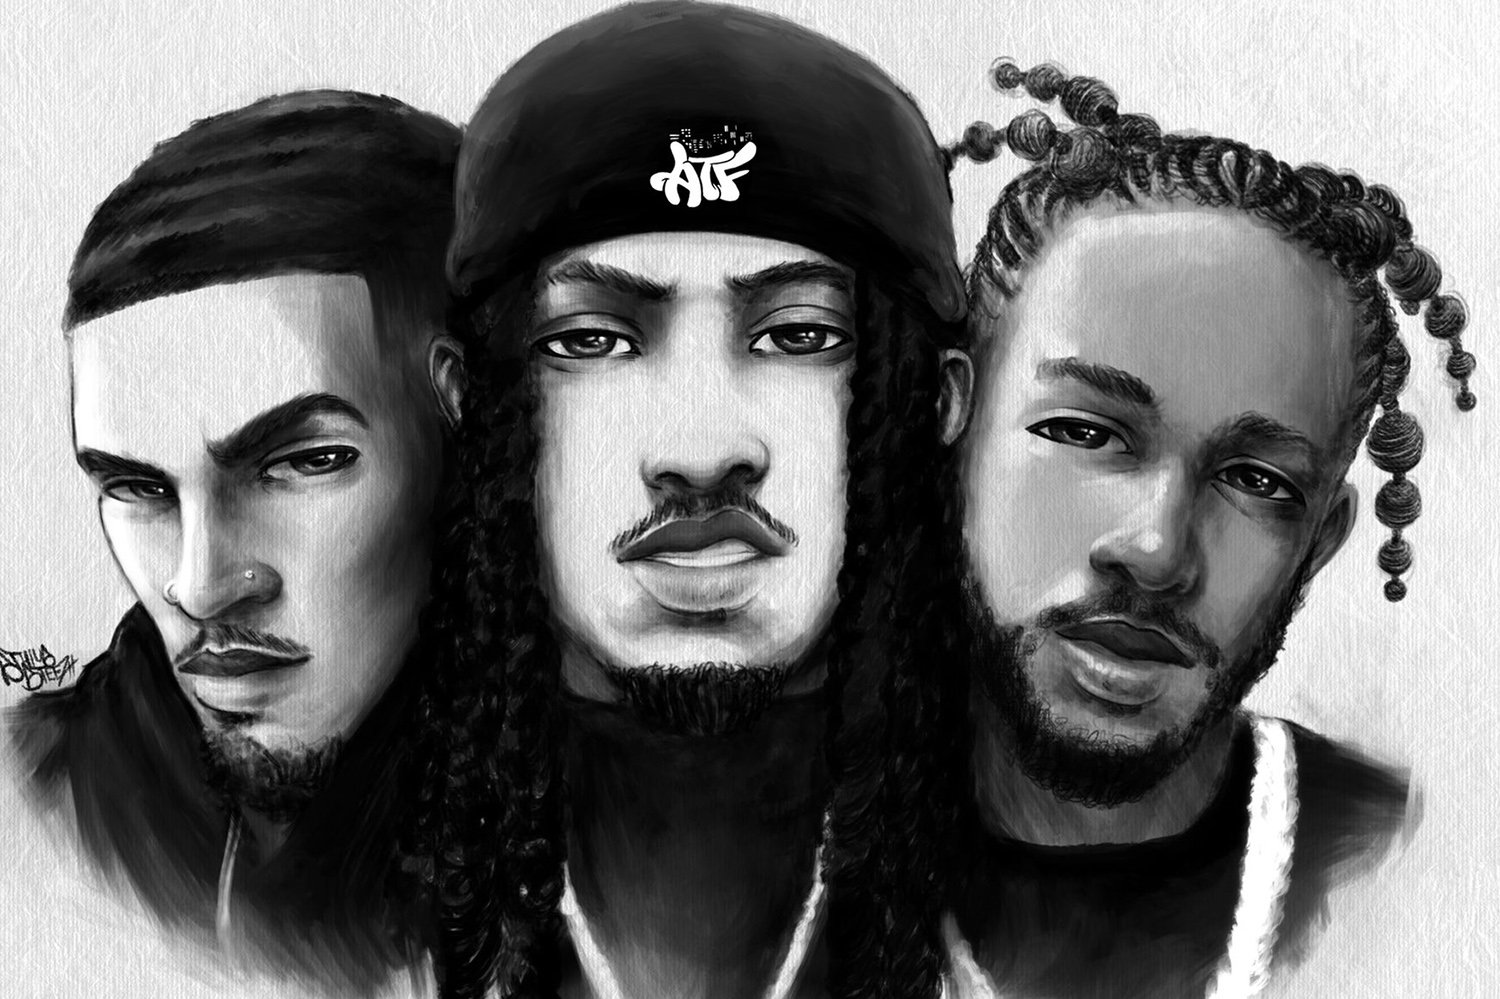 Capella Grey, Chris Brown & Popcaan – GYALIS (Remix) MP3 DOWNLOAD (Official Music) song